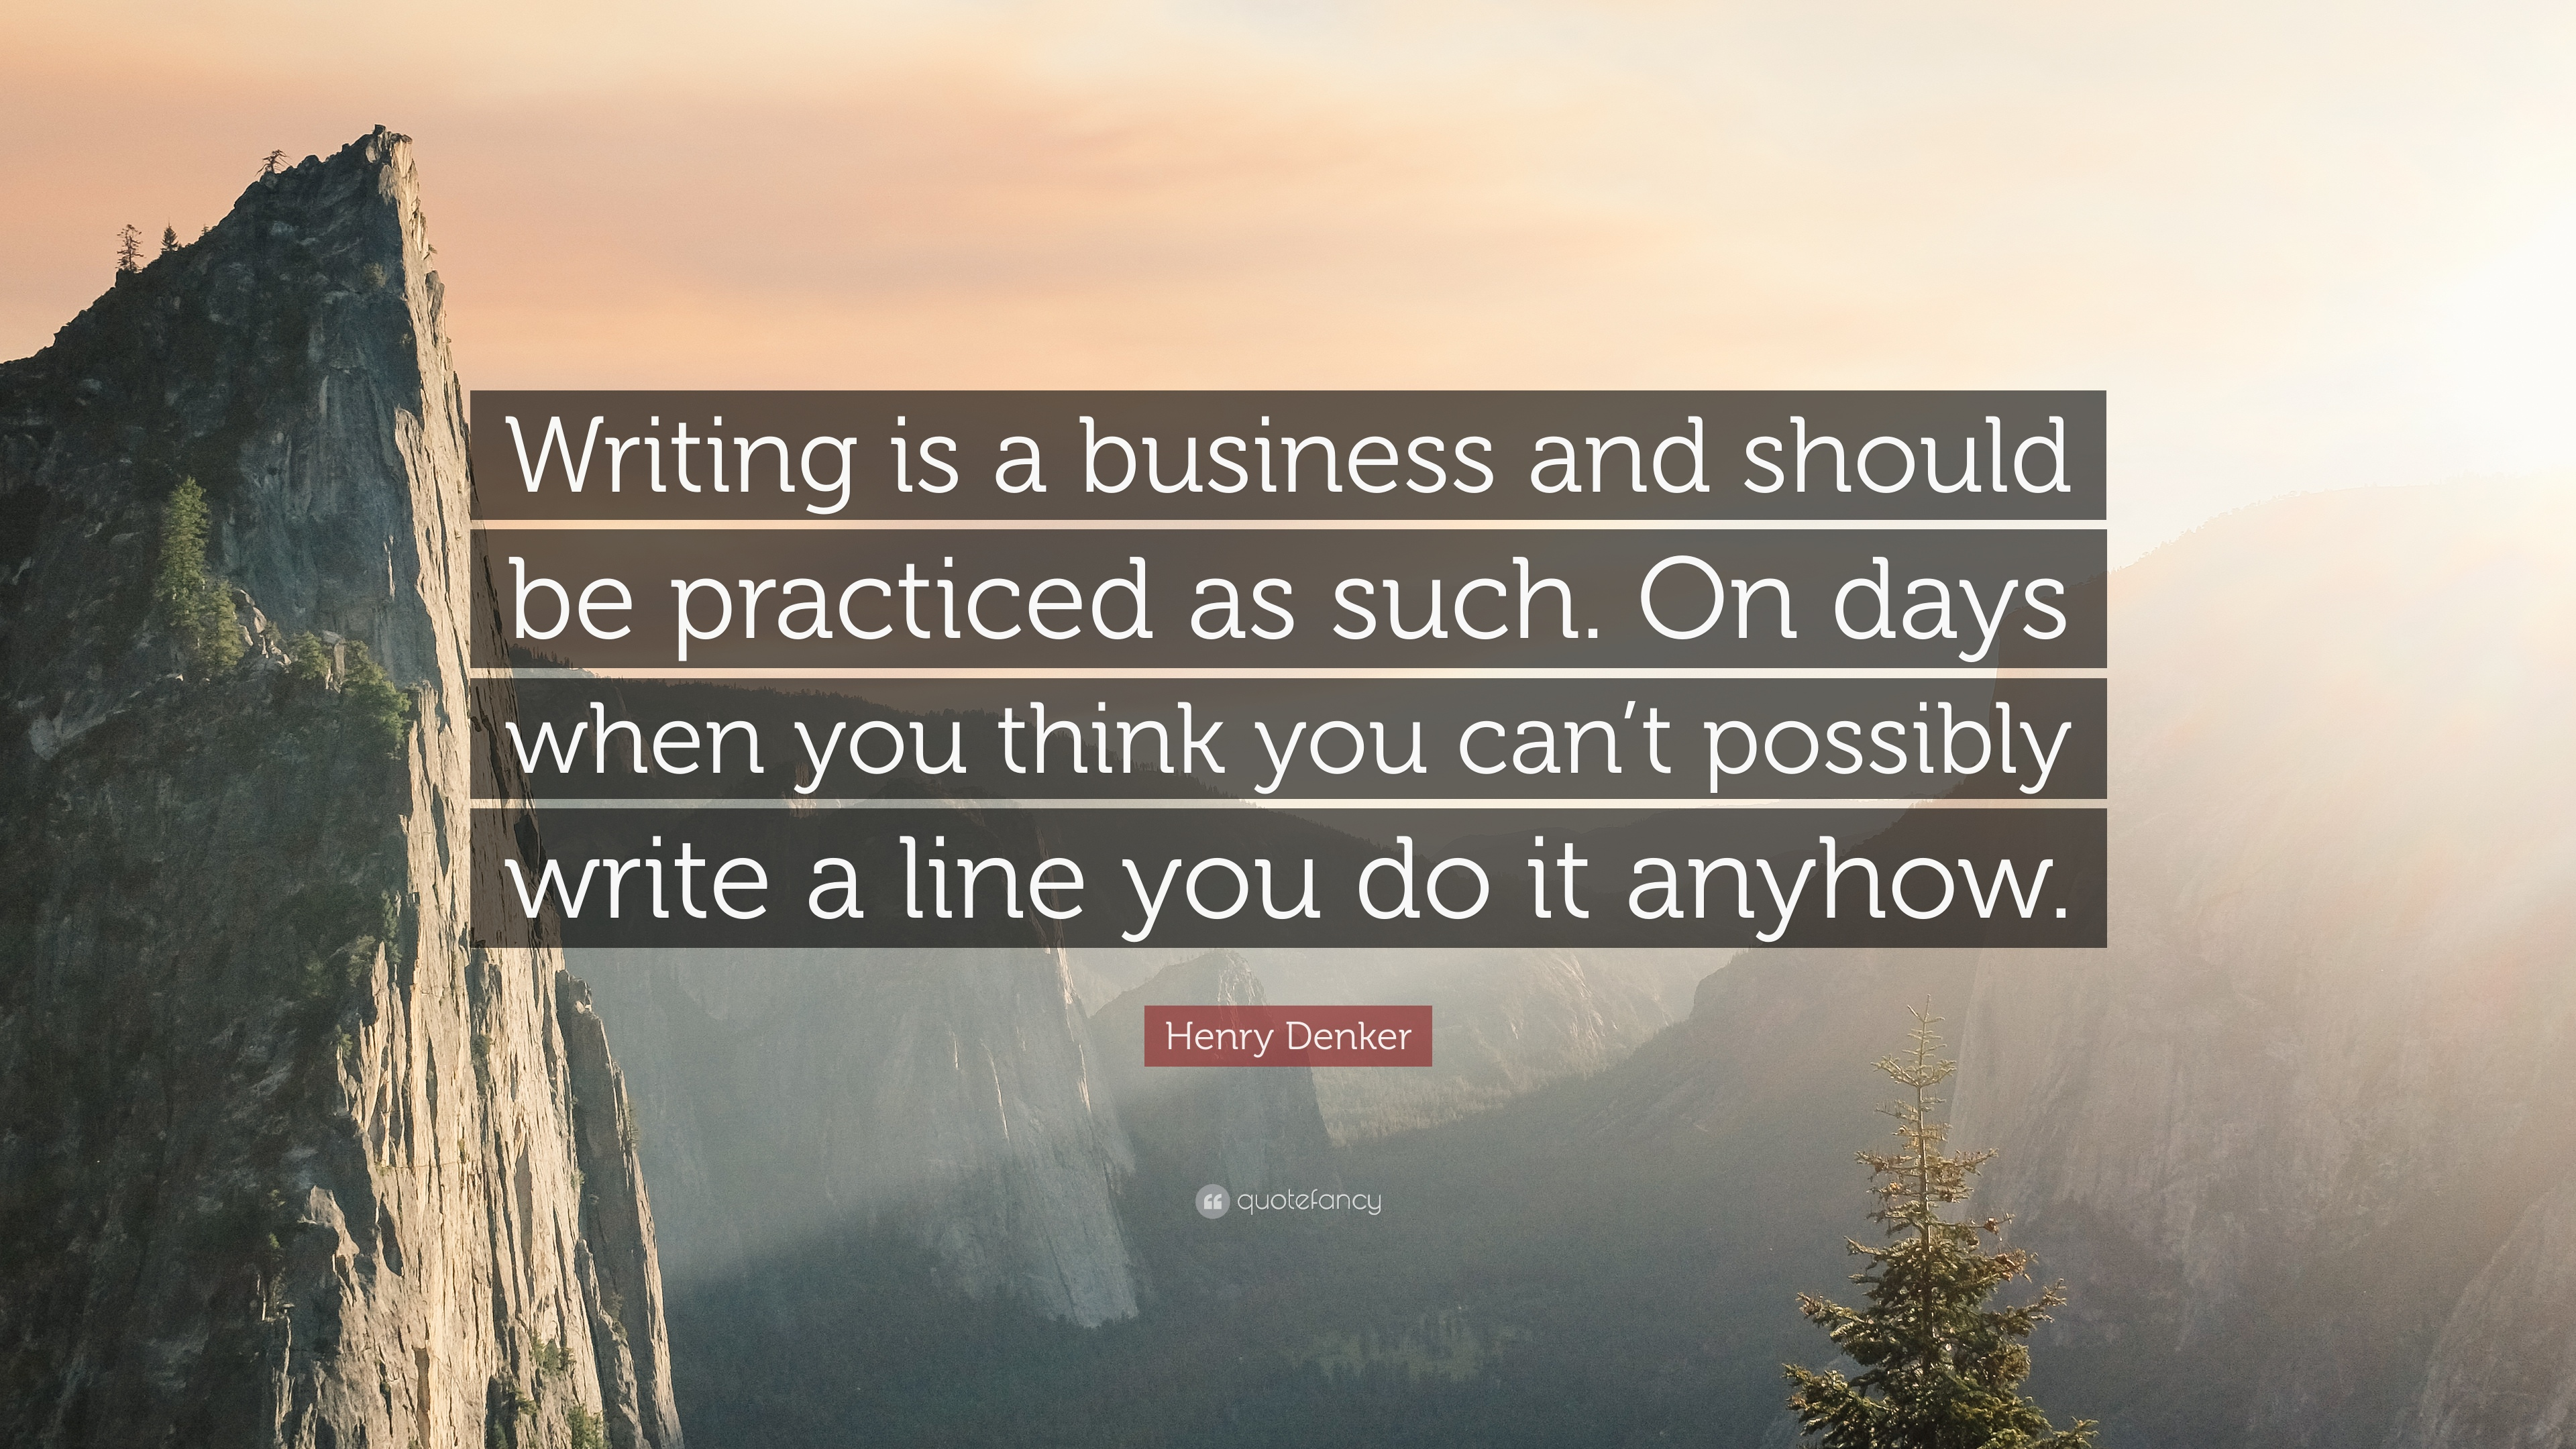 writing a business quote